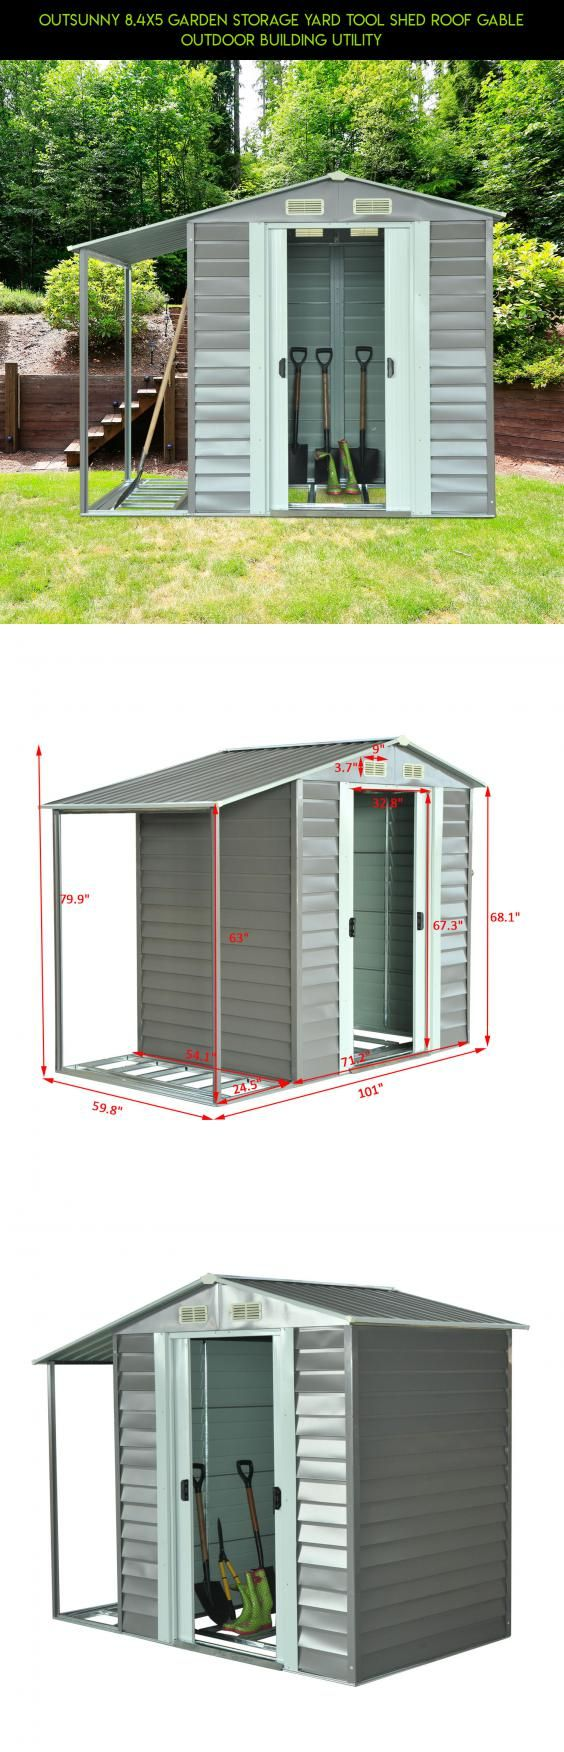 Outsunny 8.4x5 Garden Storage Yard Tool Shed Roof Gable Outdoor Building Utility #a #storage #technology #shed #plans #kit #shopping #products #camera #tech #fpv #drone #racing #parts #gadgets